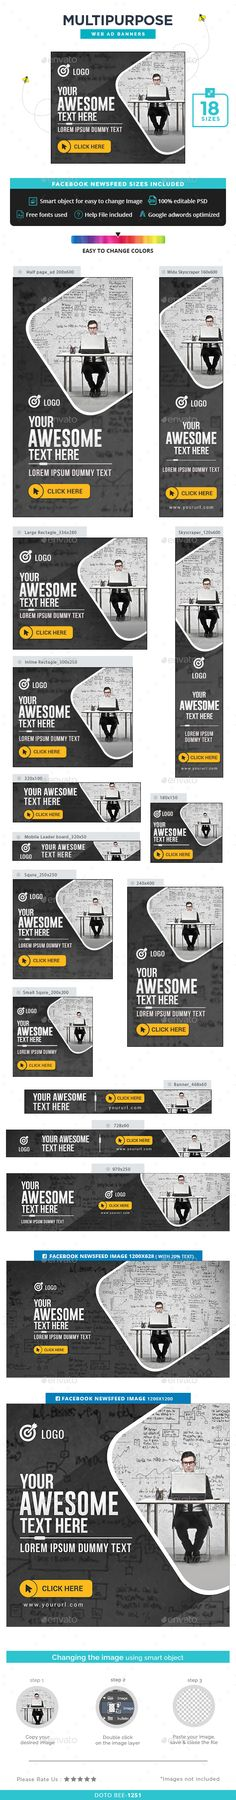 Multipurpose Web Banners Template PSD. Download here: http://graphicriver.net/item/multipurpose-banners/15639210?ref=ksioks